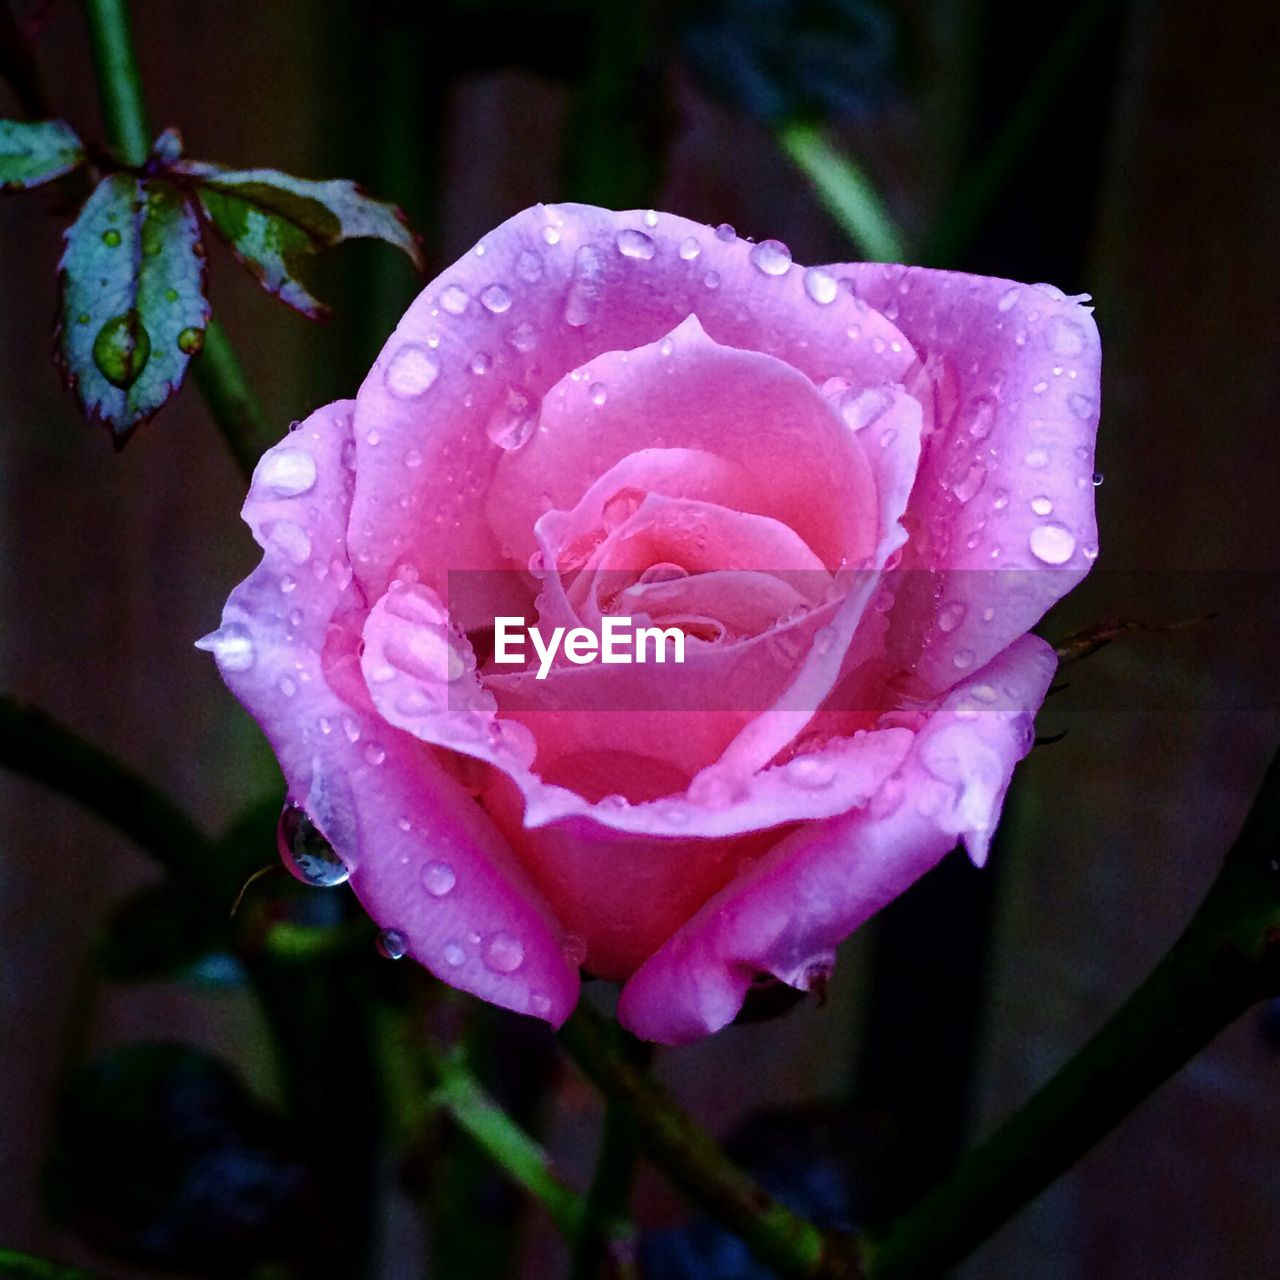 flower, drop, petal, water, growth, nature, wet, flower head, rose - flower, fragility, beauty in nature, plant, freshness, raindrop, close-up, no people, focus on foreground, outdoors, day, blooming